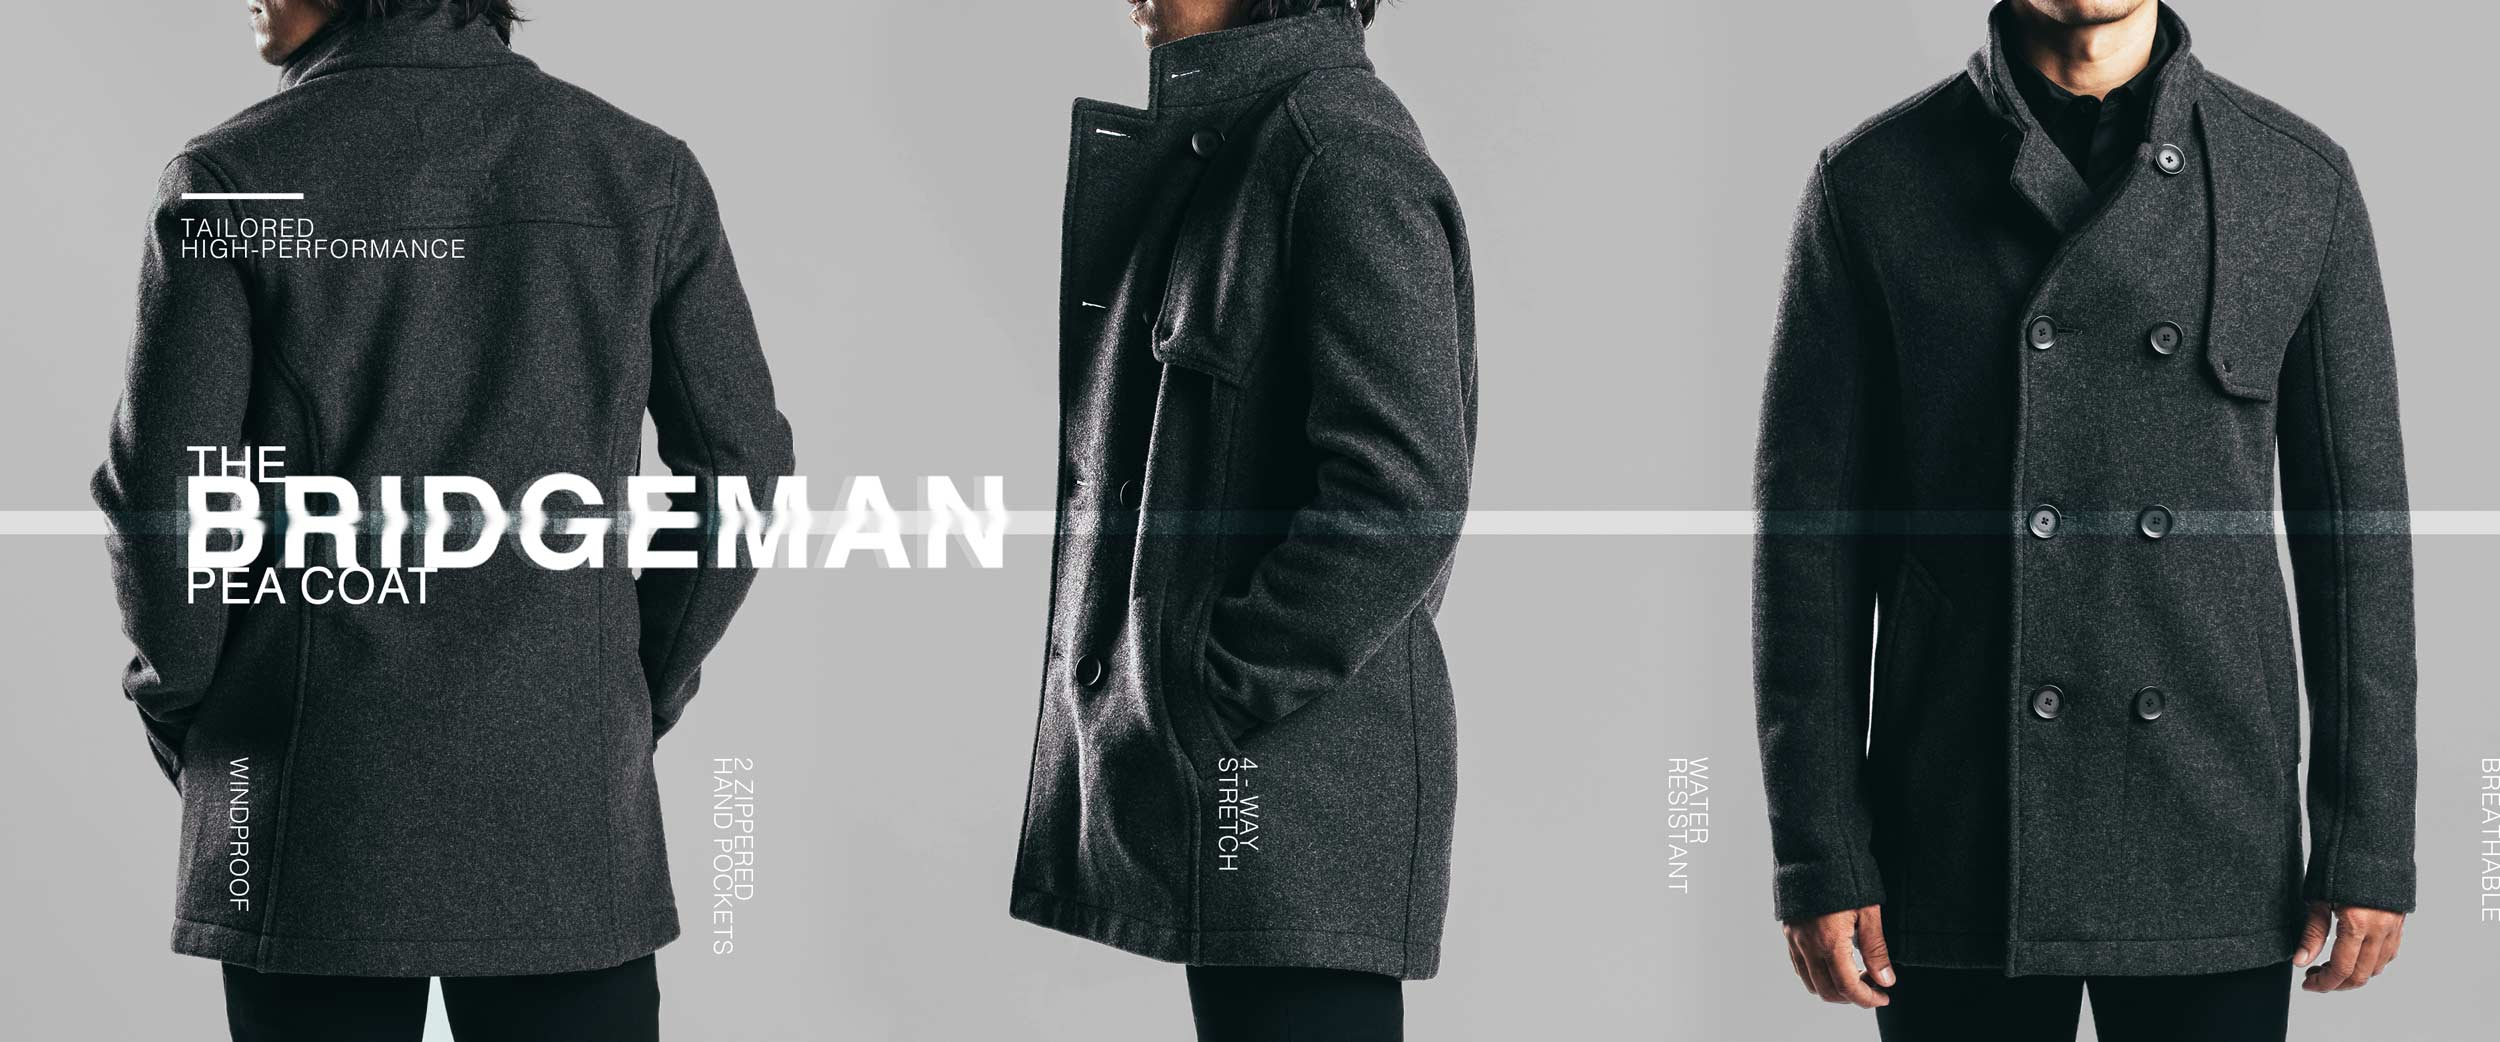 Bridgeman Pea Coat